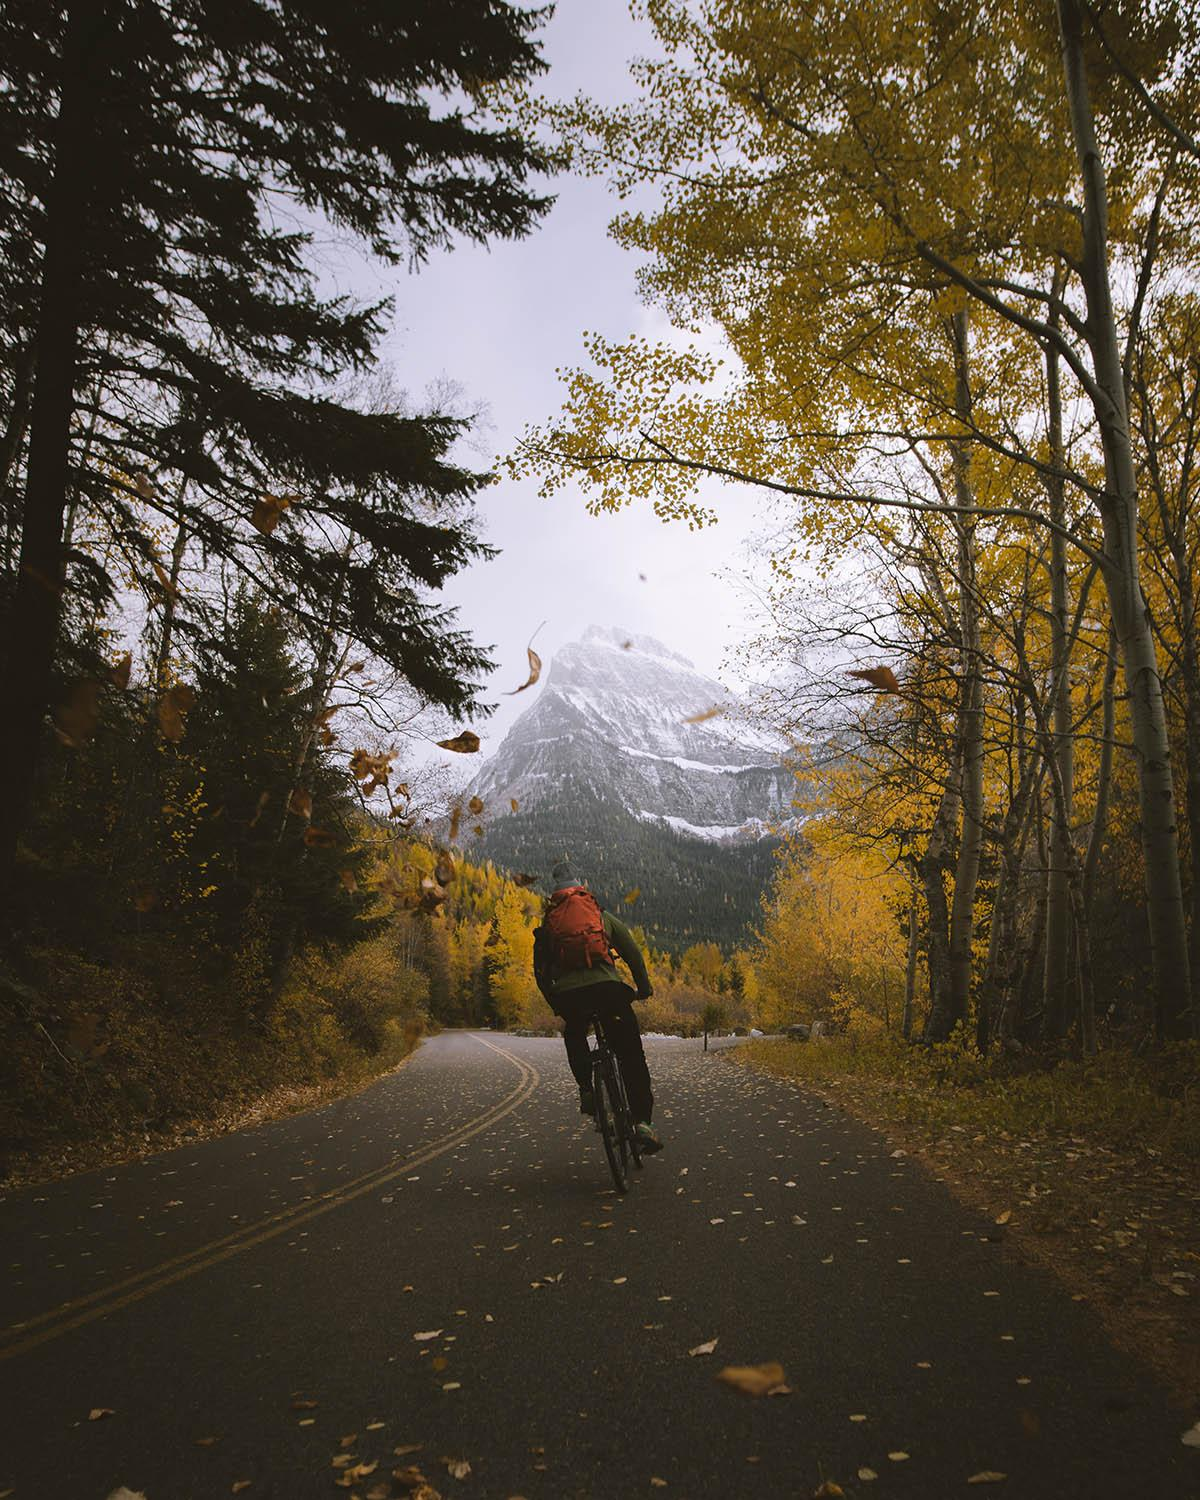 Fall Biking on Going-to-the-Sun Road in Glacier National Park